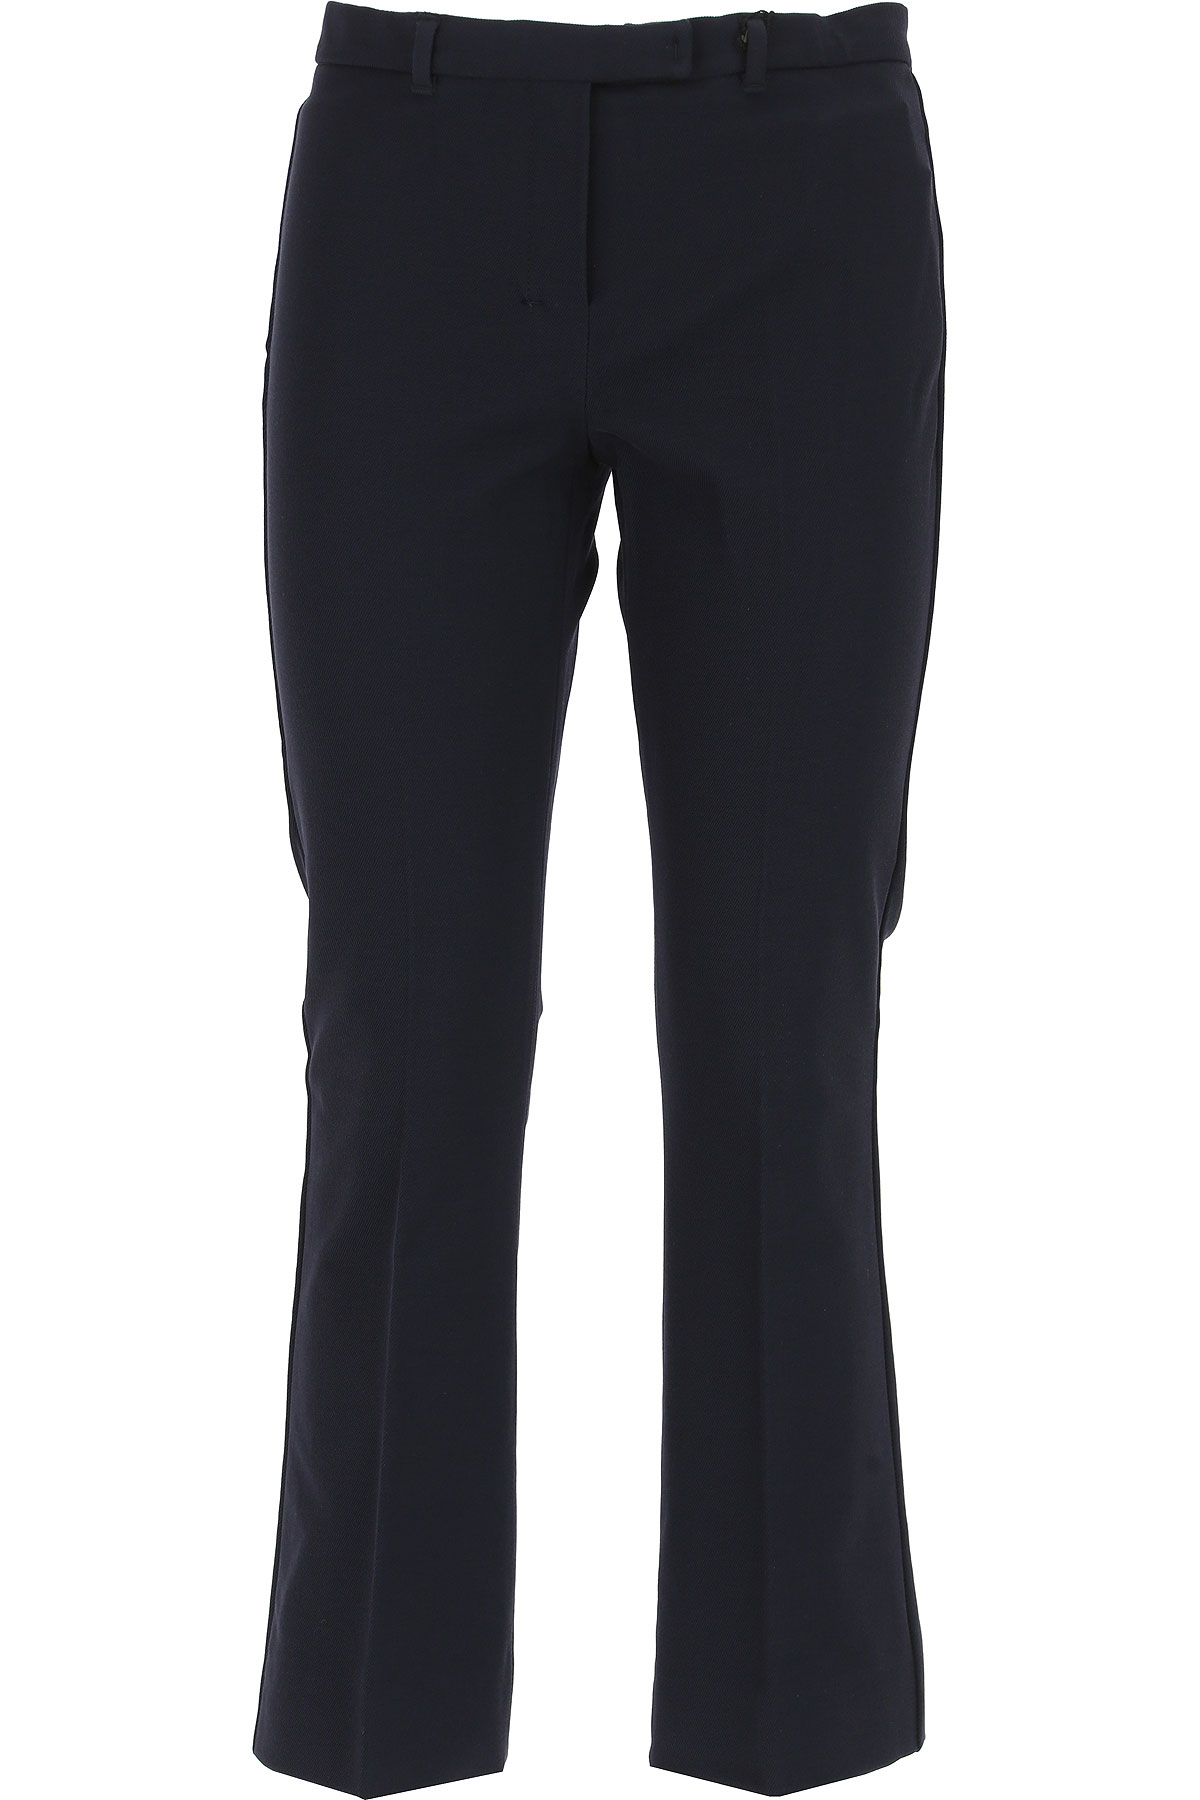 Image of Weekend by Max Mara Pants for Women, Midnight Blue, Cotton, 2017, 26 28 30